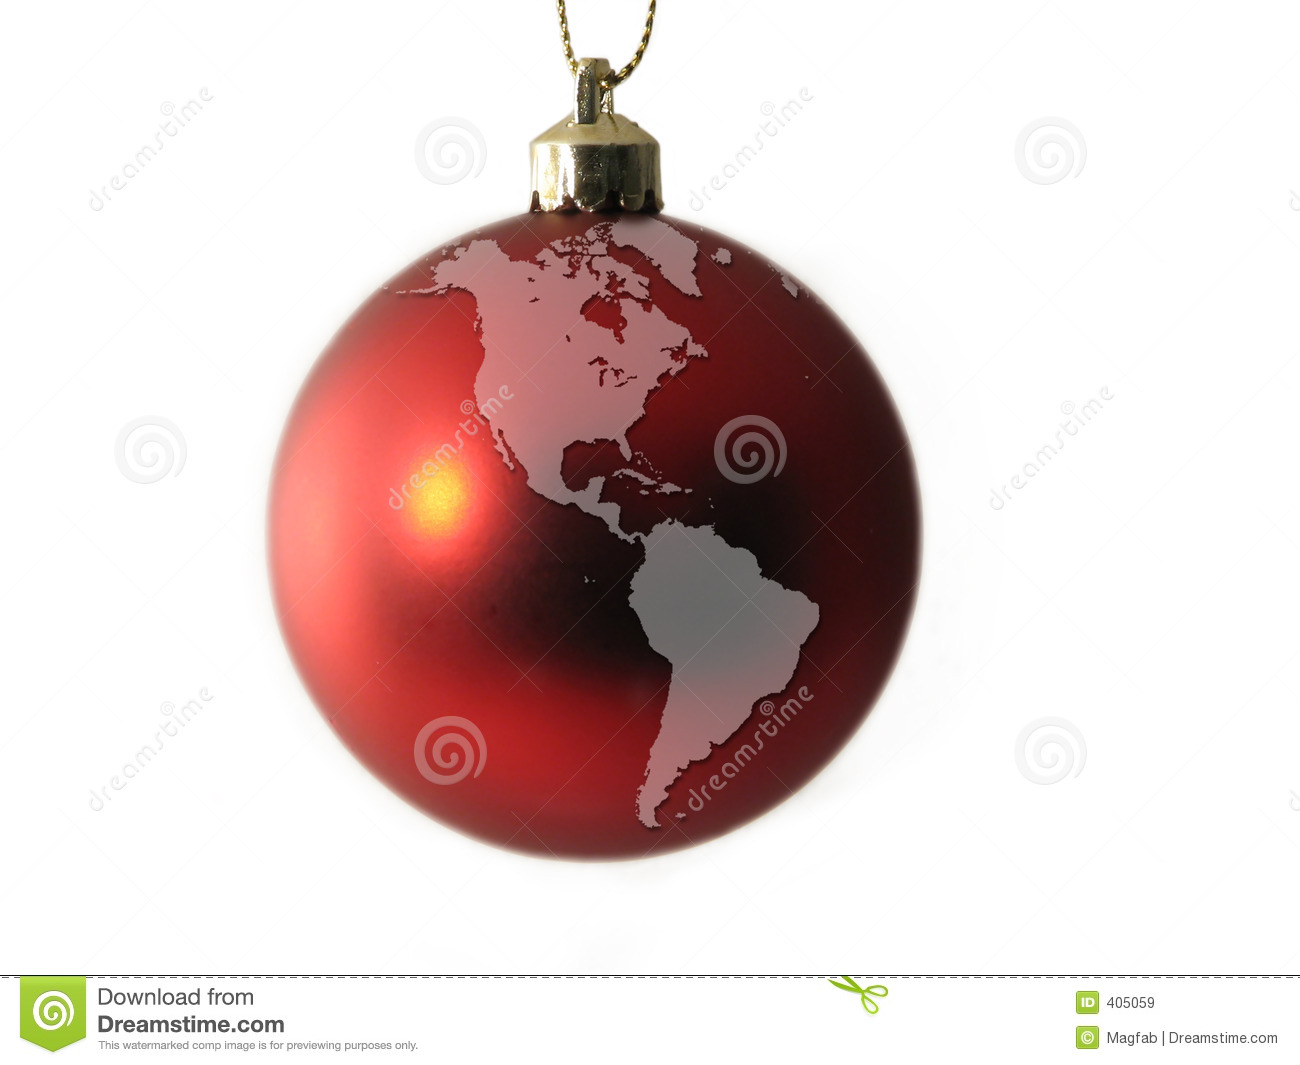 World globe christmas ornaments - America Ball Christmas Globe North South World